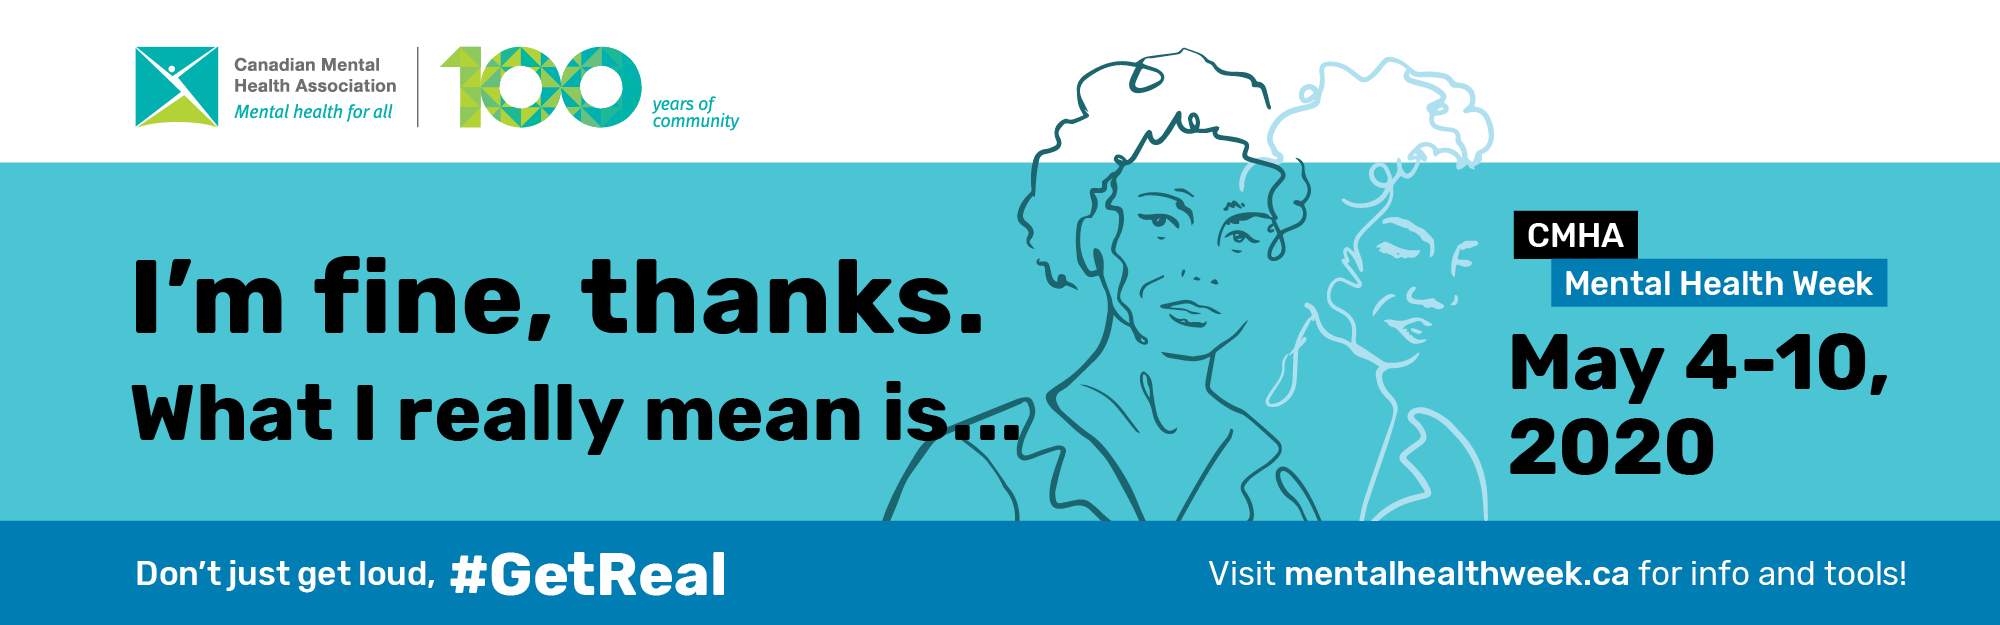 Mental health week promo banner